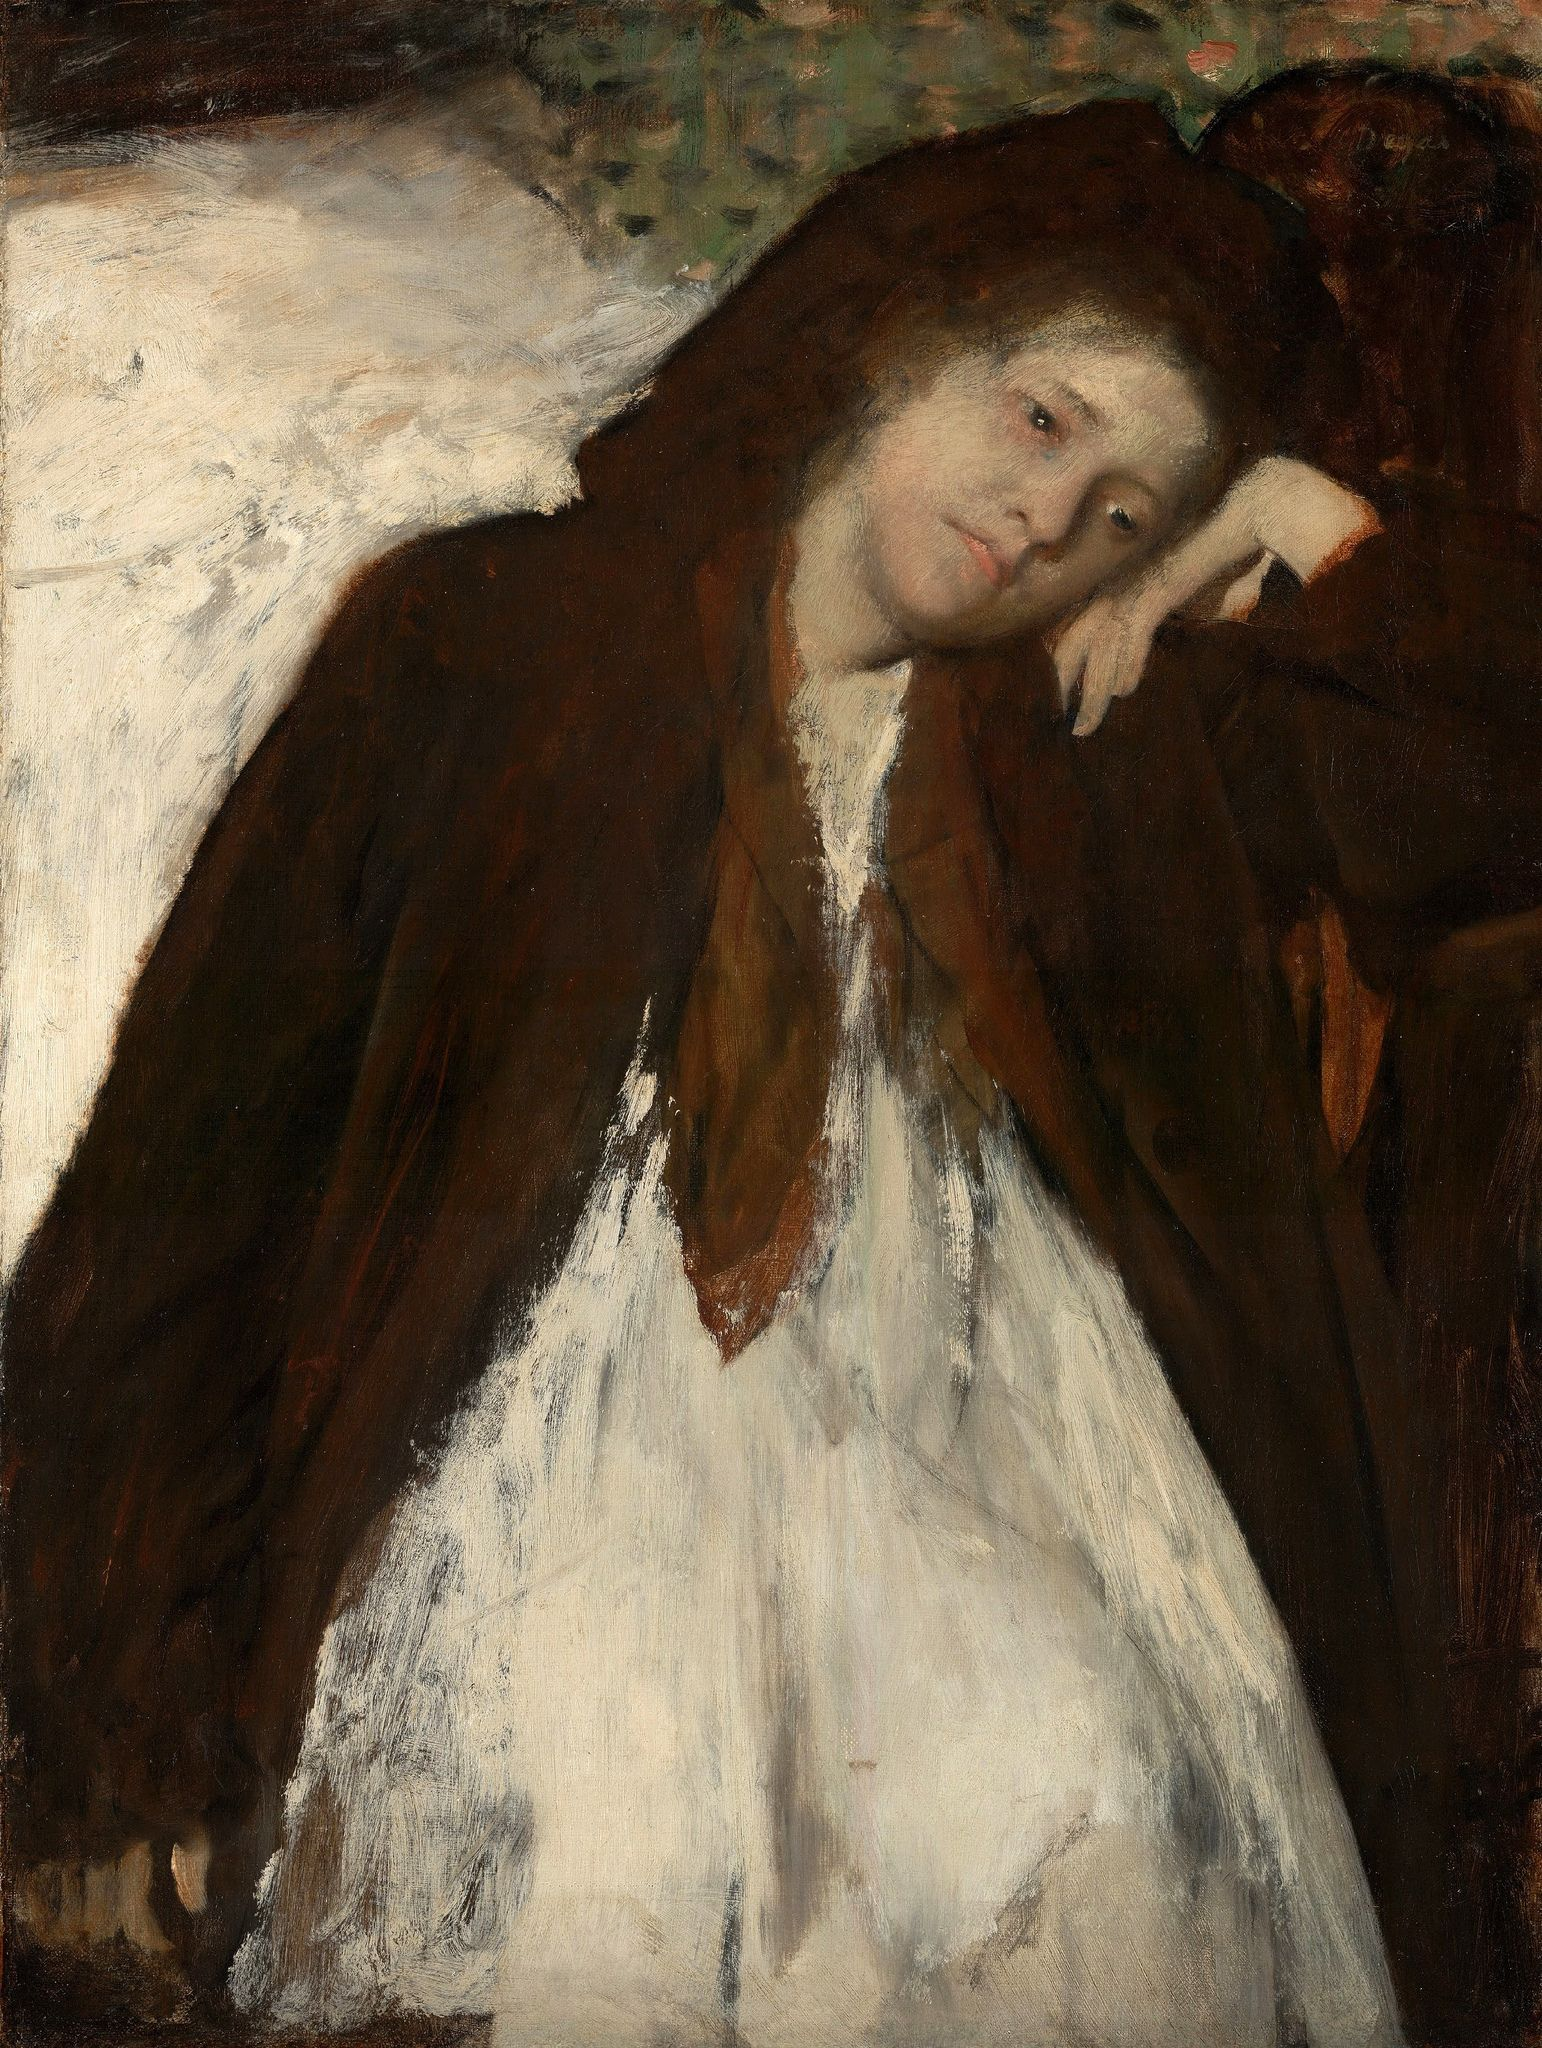 https://flic.kr/p/d6QL2f   Edgar Degas - Convalescent [c.1872-87]   Although the identity of the sitter in this portrait is a mystery, Edgar Degas conveyed her character by capturing the overwhelming sorrow to which she has succumbed. Posed with her head tilted and leaning against the back of her left hand, she appears weary. Her languorous expression and red-rimmed eyes, together with the limp right arm hanging at her side, suggest a physical or emotional malady, though nothing in the…